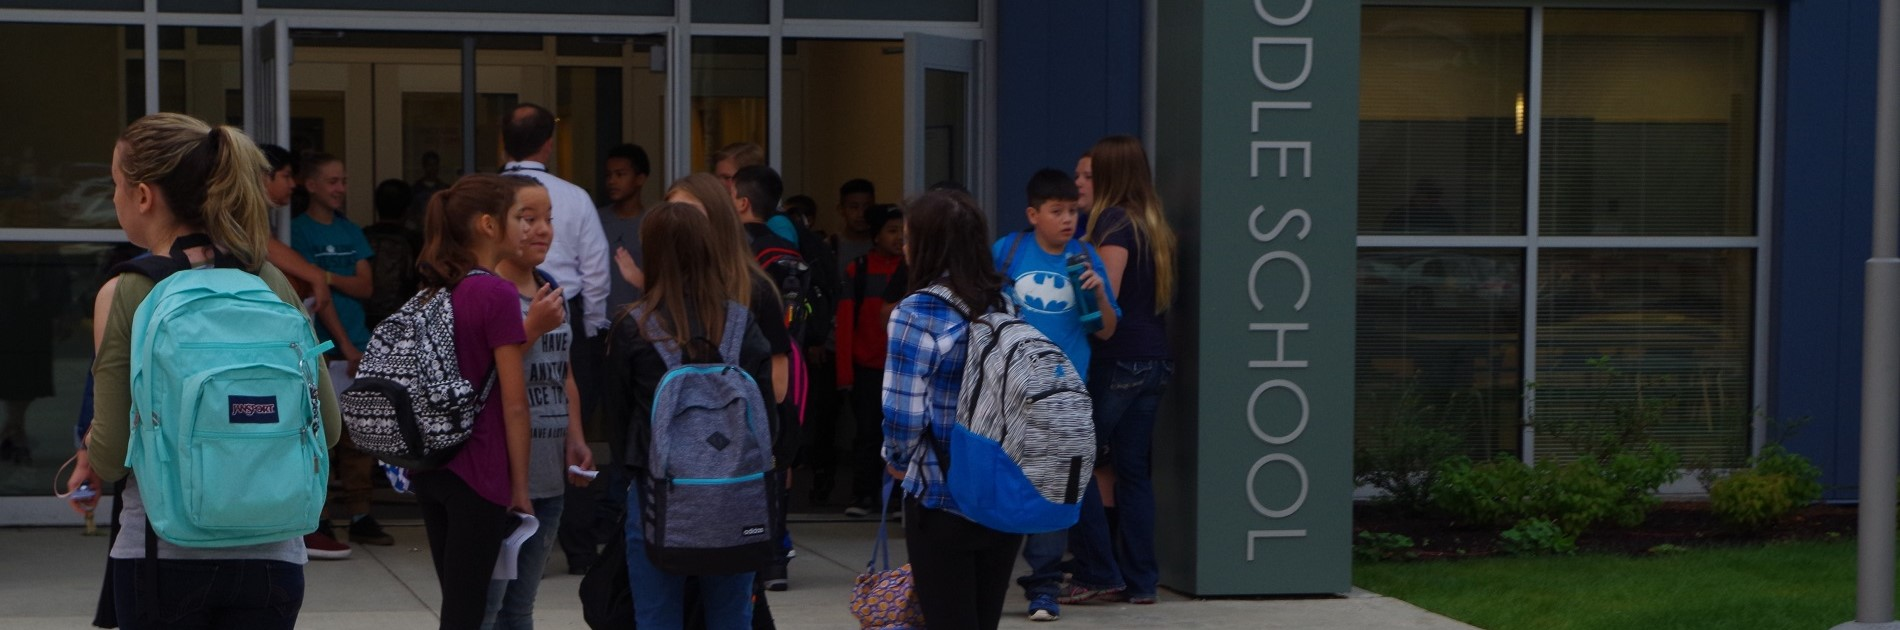 Hawkins students entering the school on their first day of school.